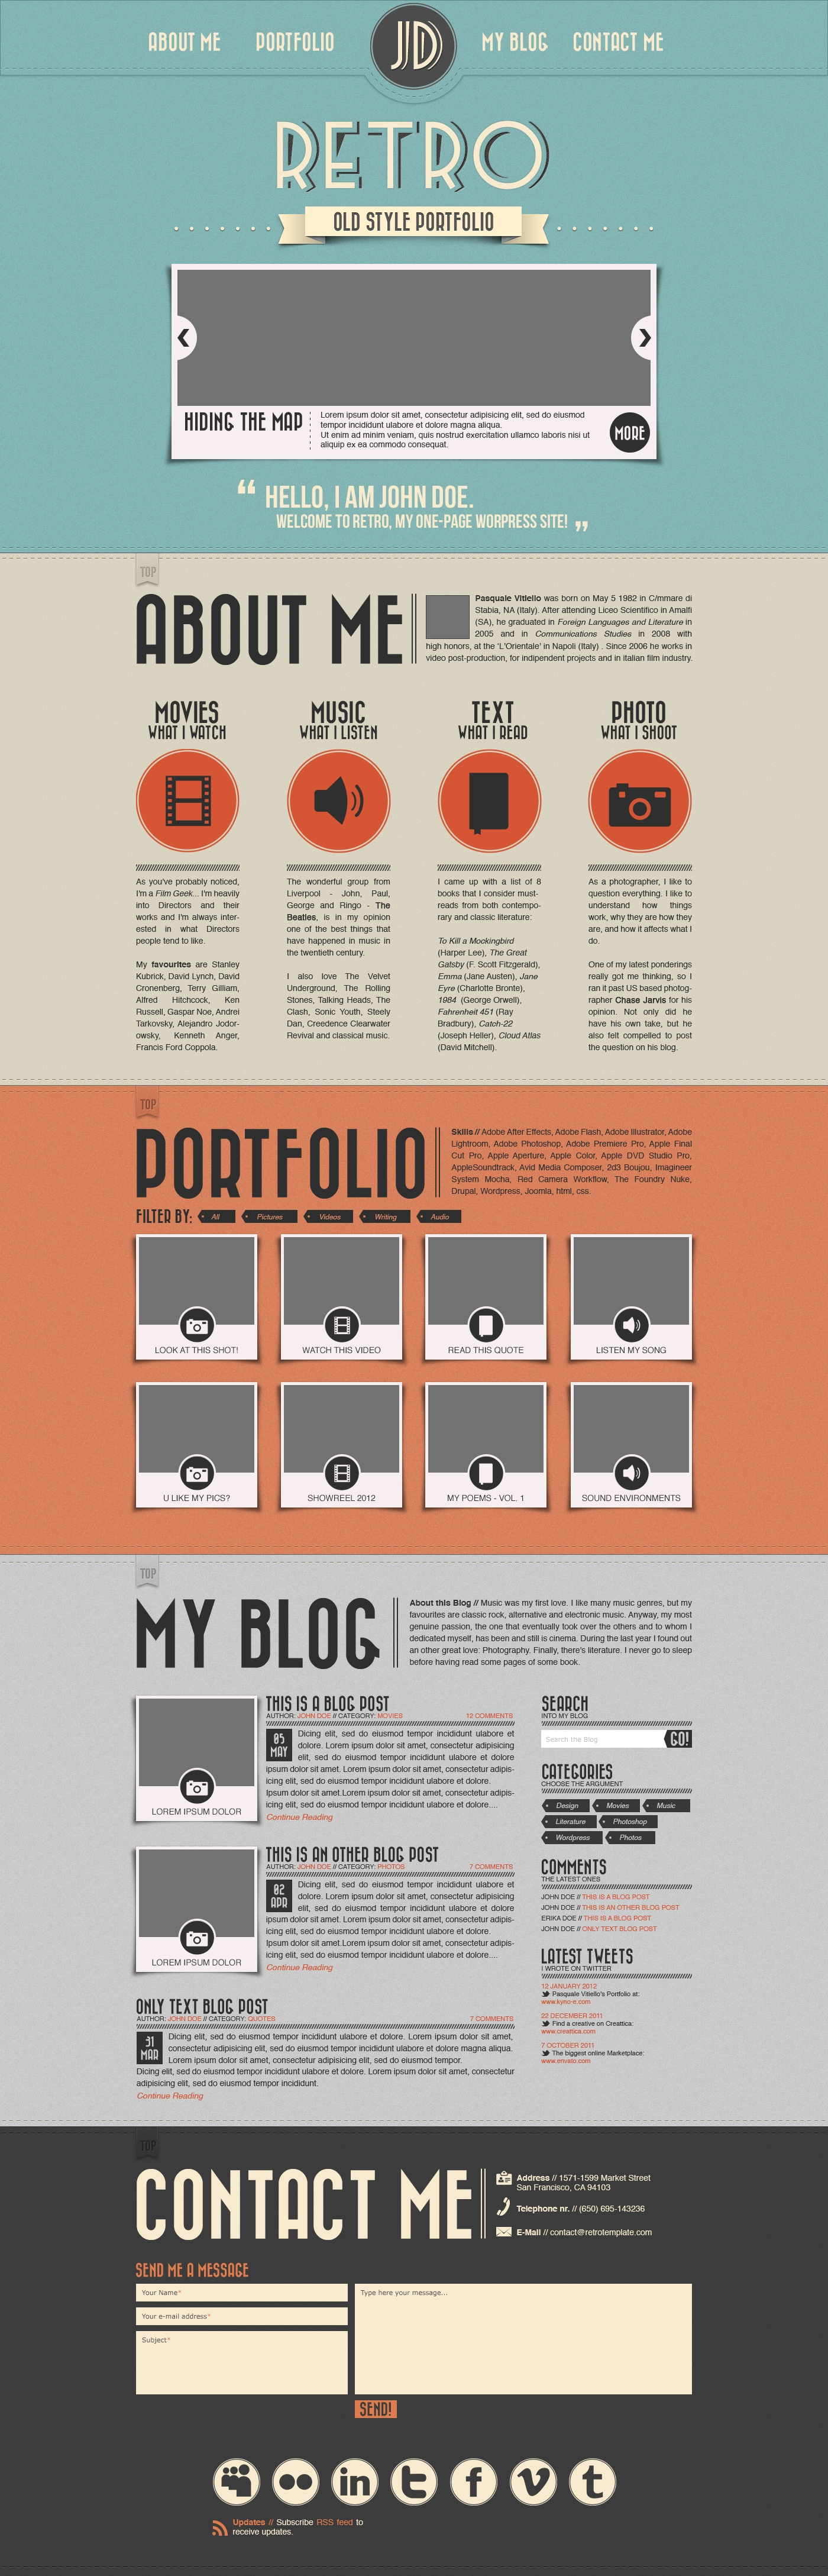 retro portfolio psd template  photoshop  templates  free